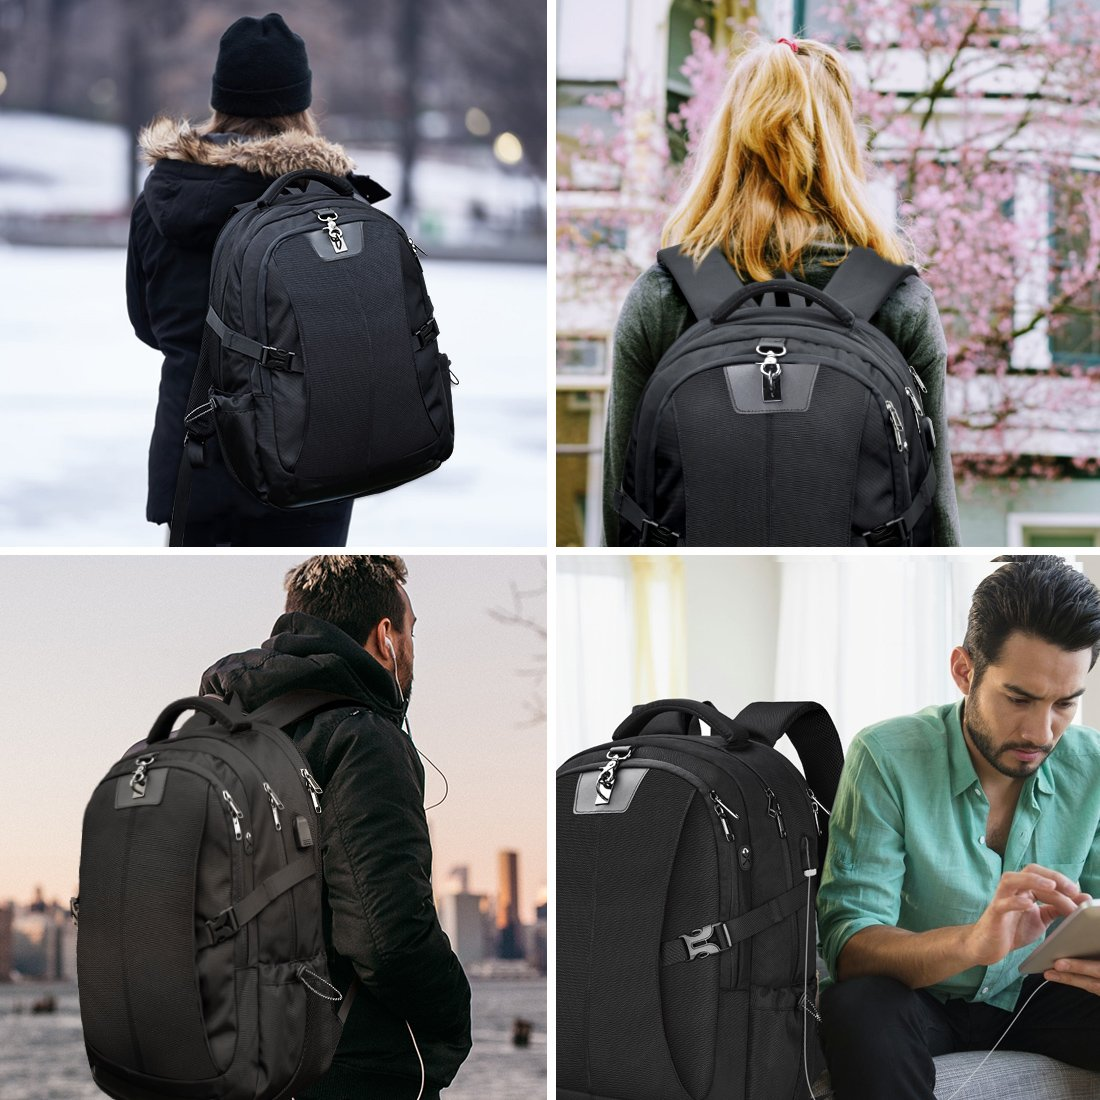 Laptop Backpack 17.3 Inch Travel Anti-theft Waterproof School Backpack Business College Large Capacity Gaming Laptop Backpacks USB Charging Port for Men Women Black by NEWHEY (Image #6)